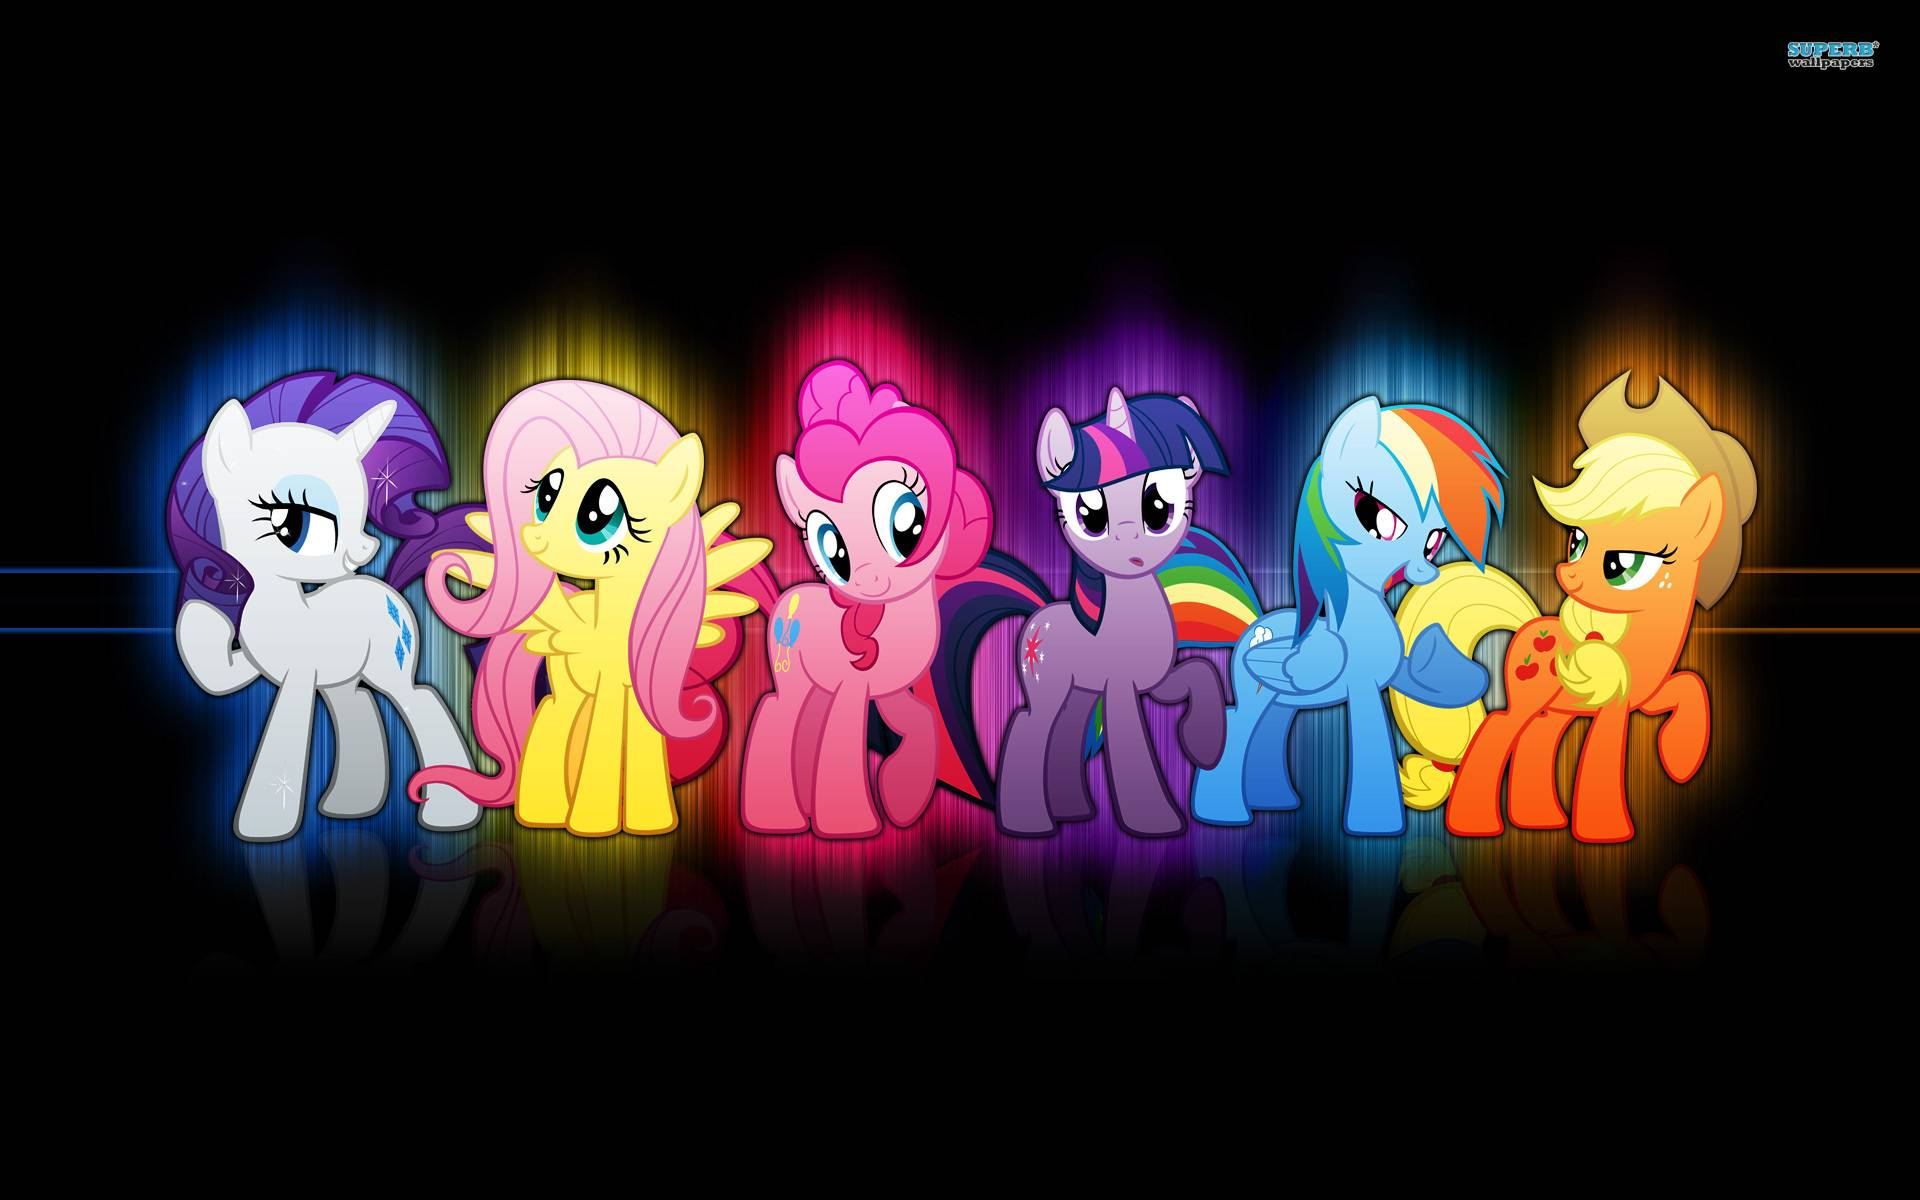 MLP FIM Background   My Little Pony Friendship is Magic Wallpaper 1920x1200